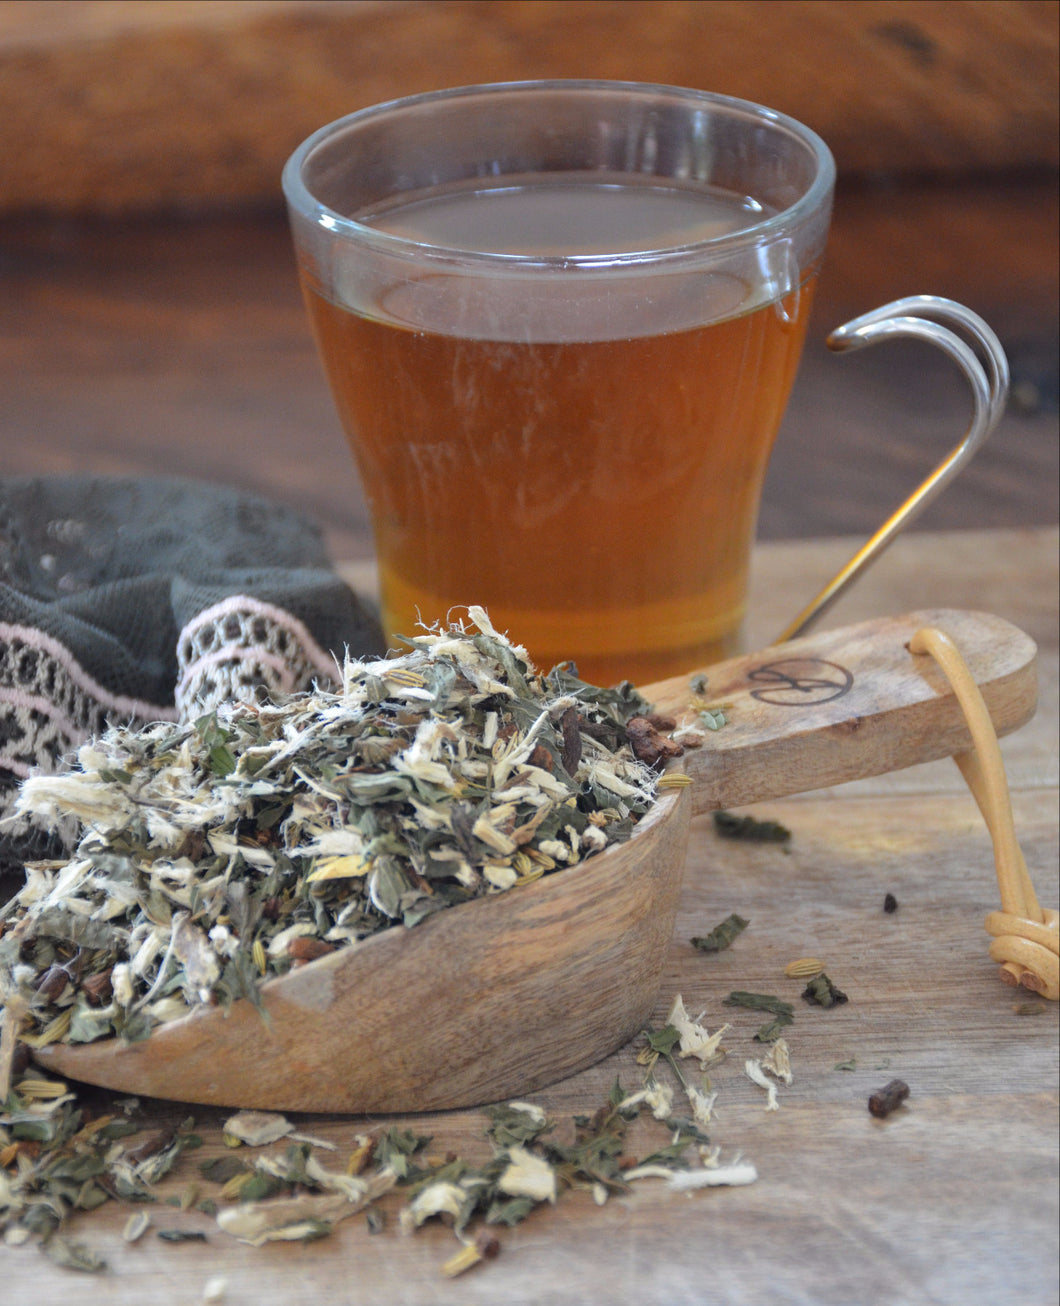 Prone to constipation? Sipping this herbal tea daily can help to keep things MOVE-iNg-IT through.